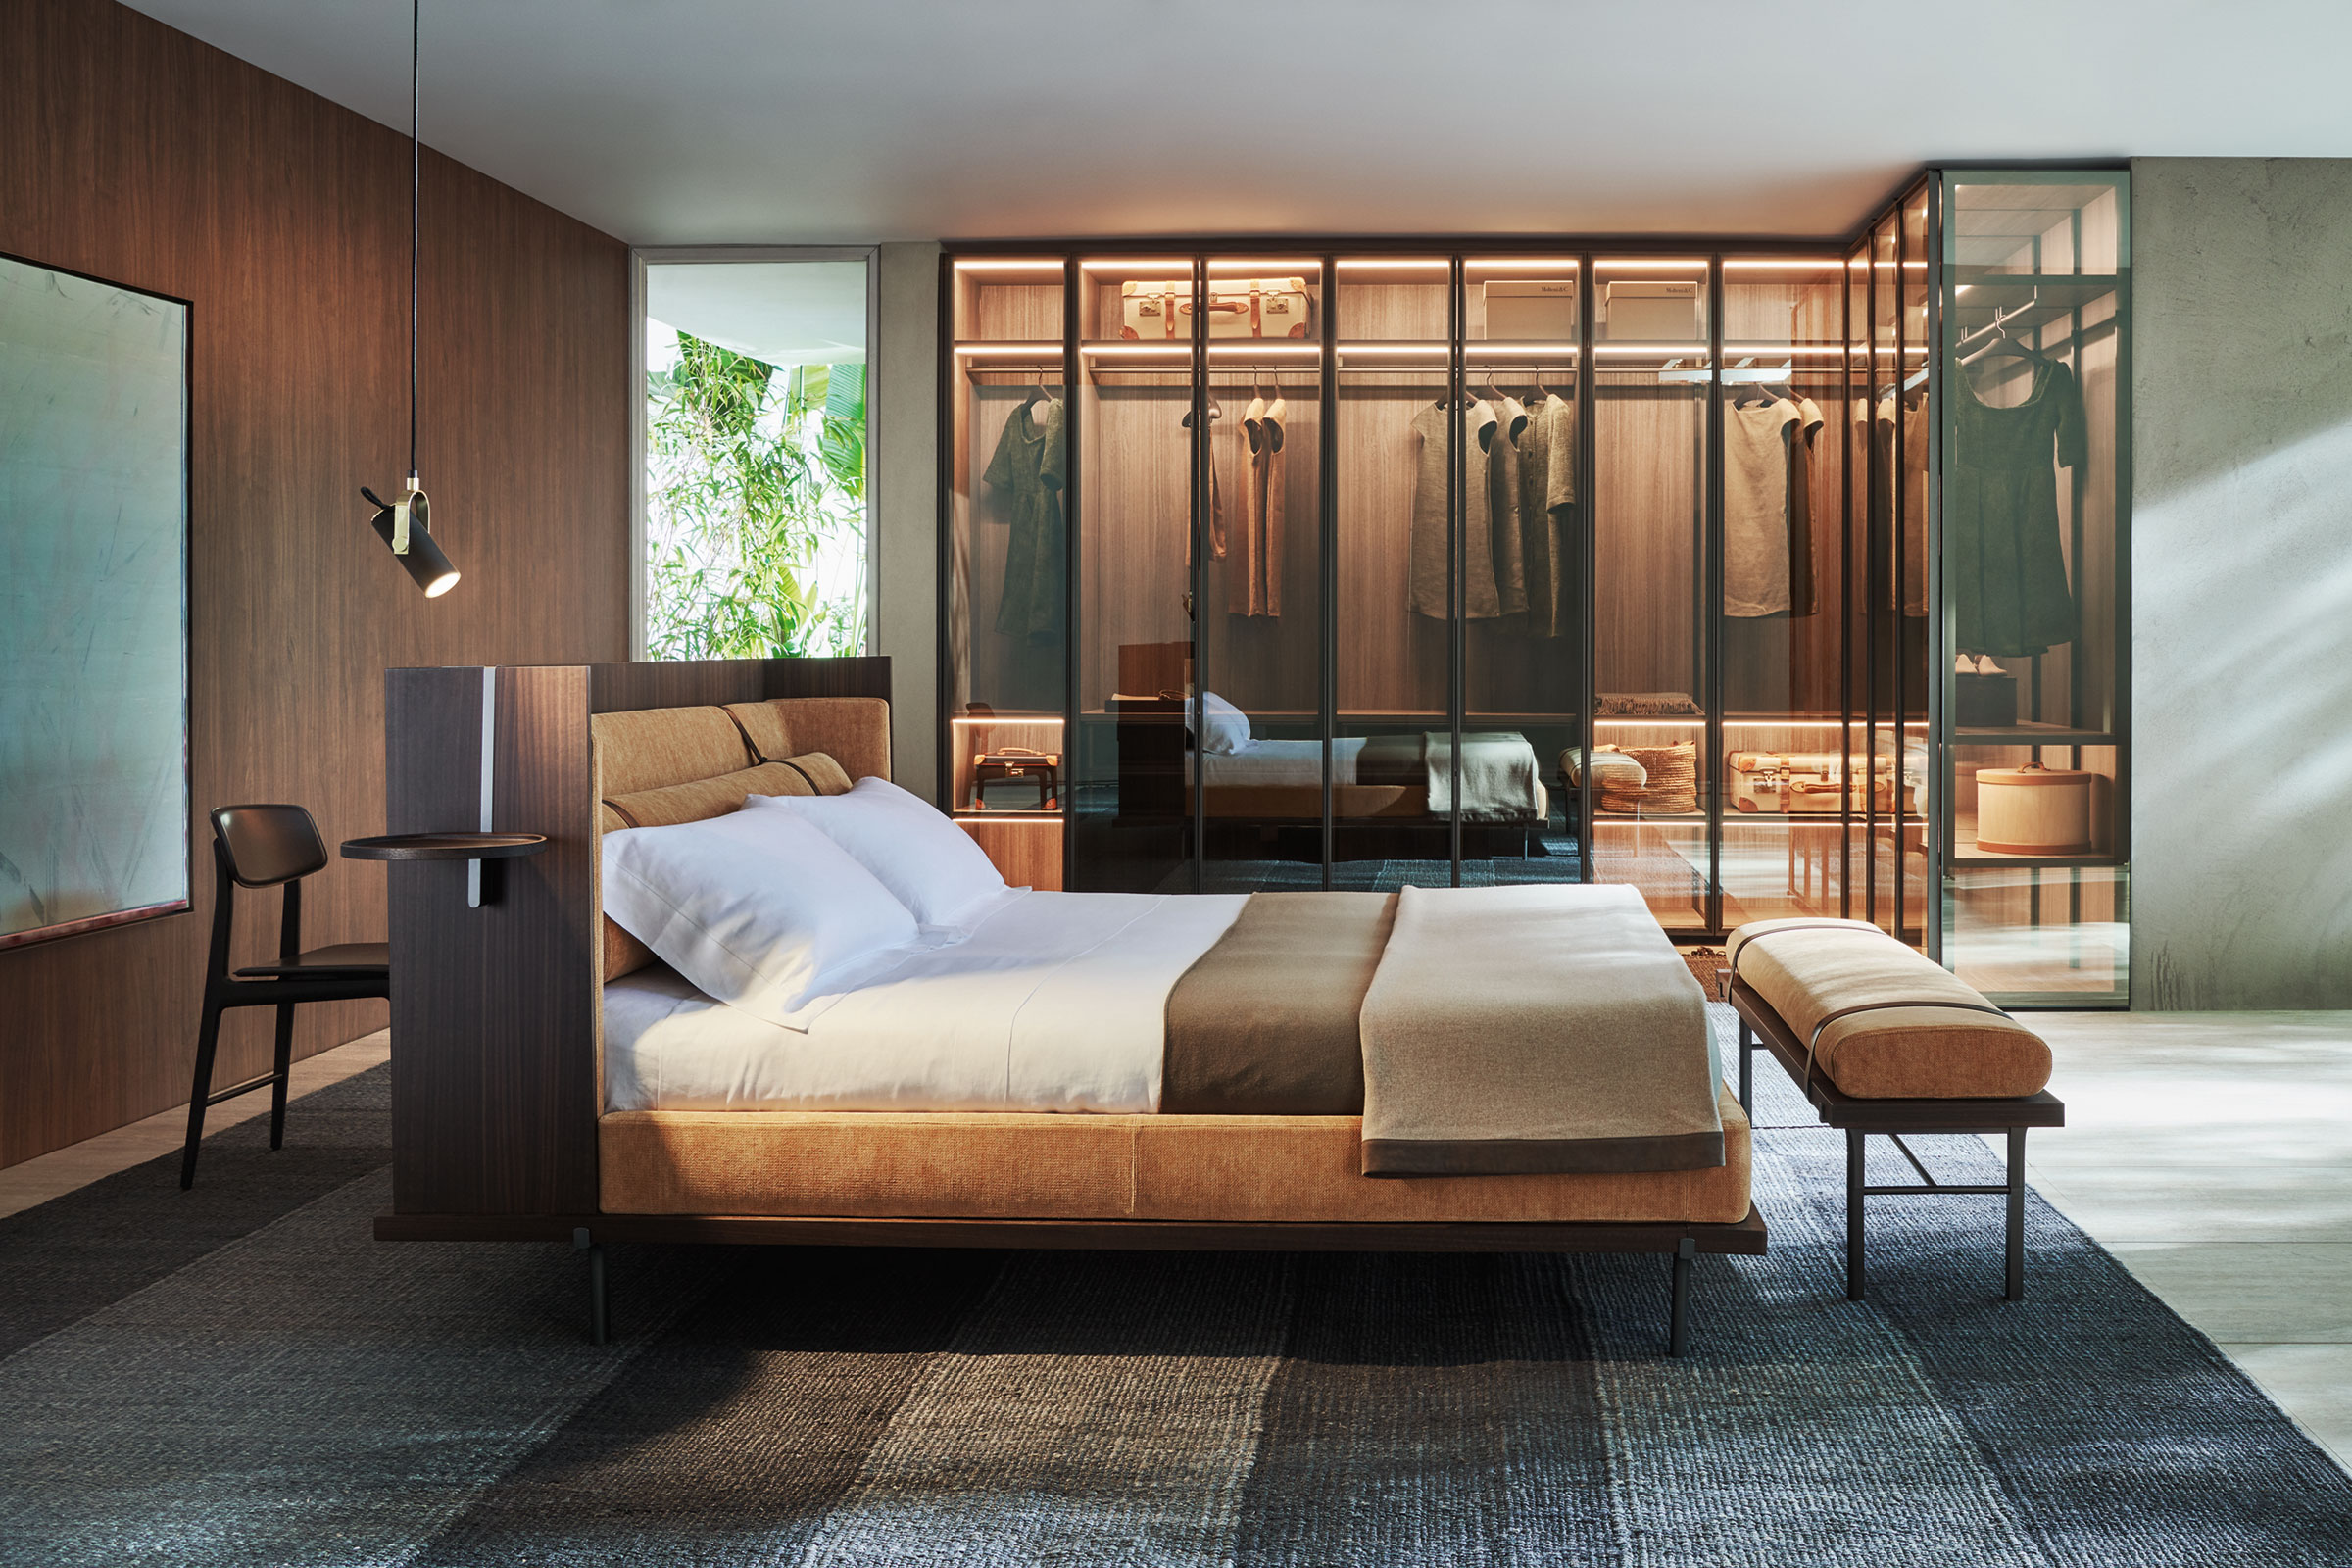 The Twelve A.M bedroom collection for Molteni&C